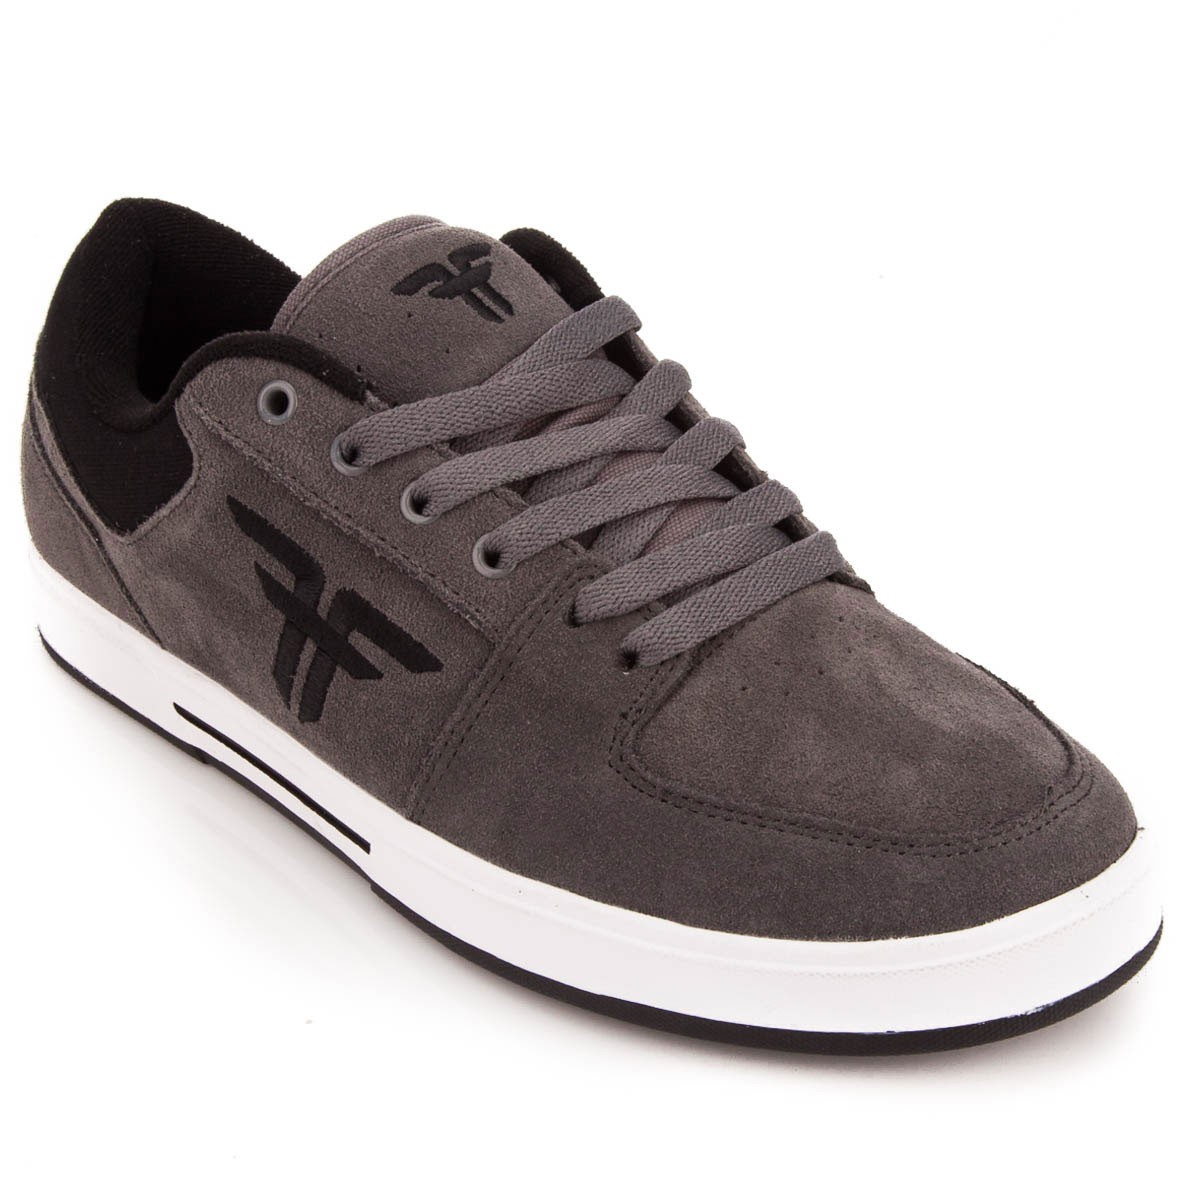 Fallen Patriot Shoes - Ash Grey/Black - 13.0